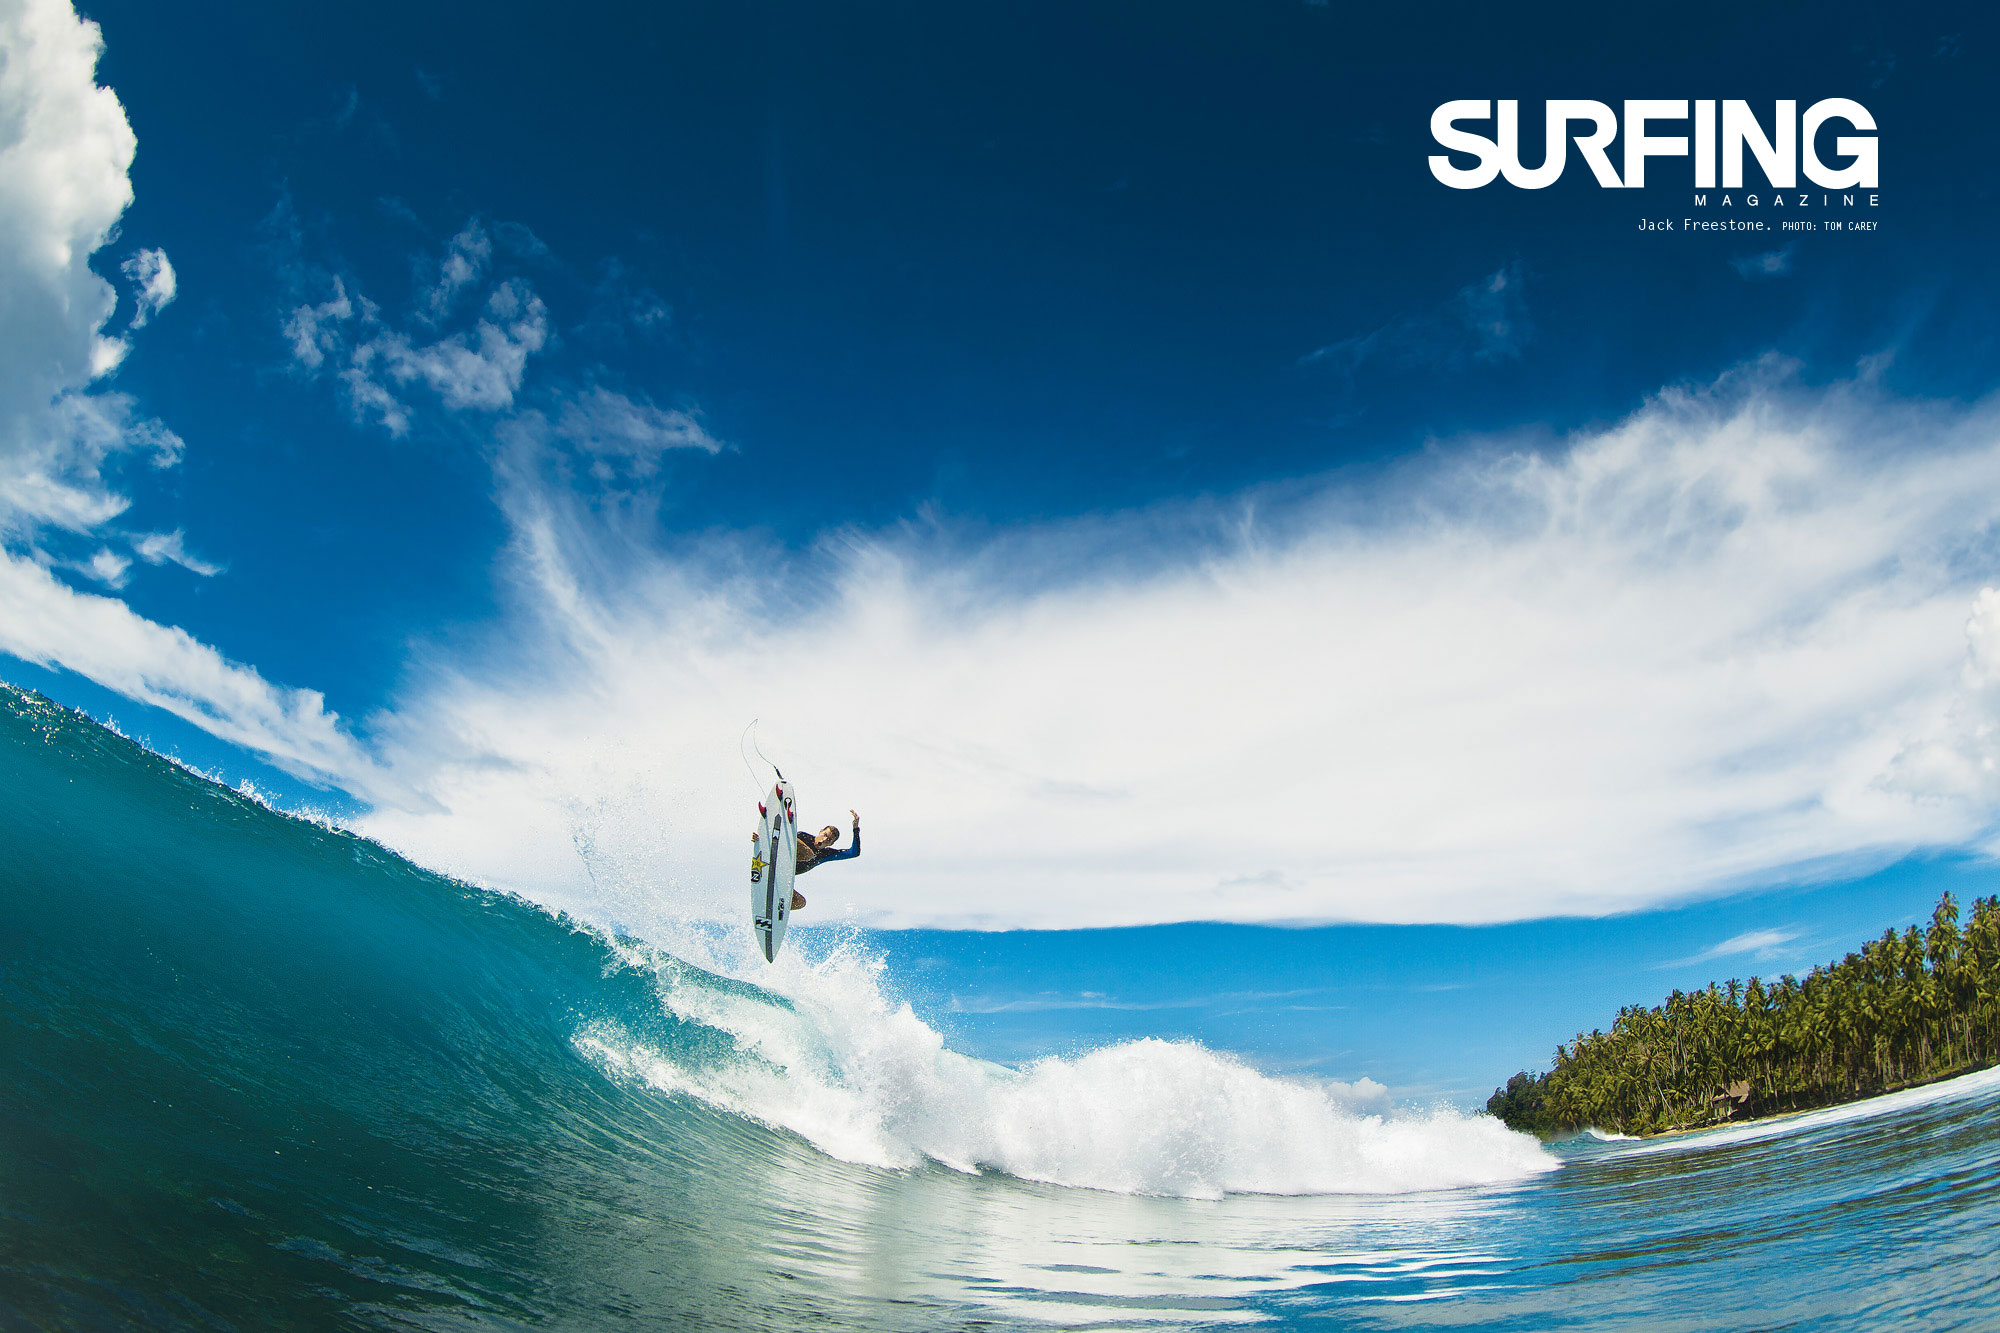 Download: Jack Freestone. Photo: Tom Carey